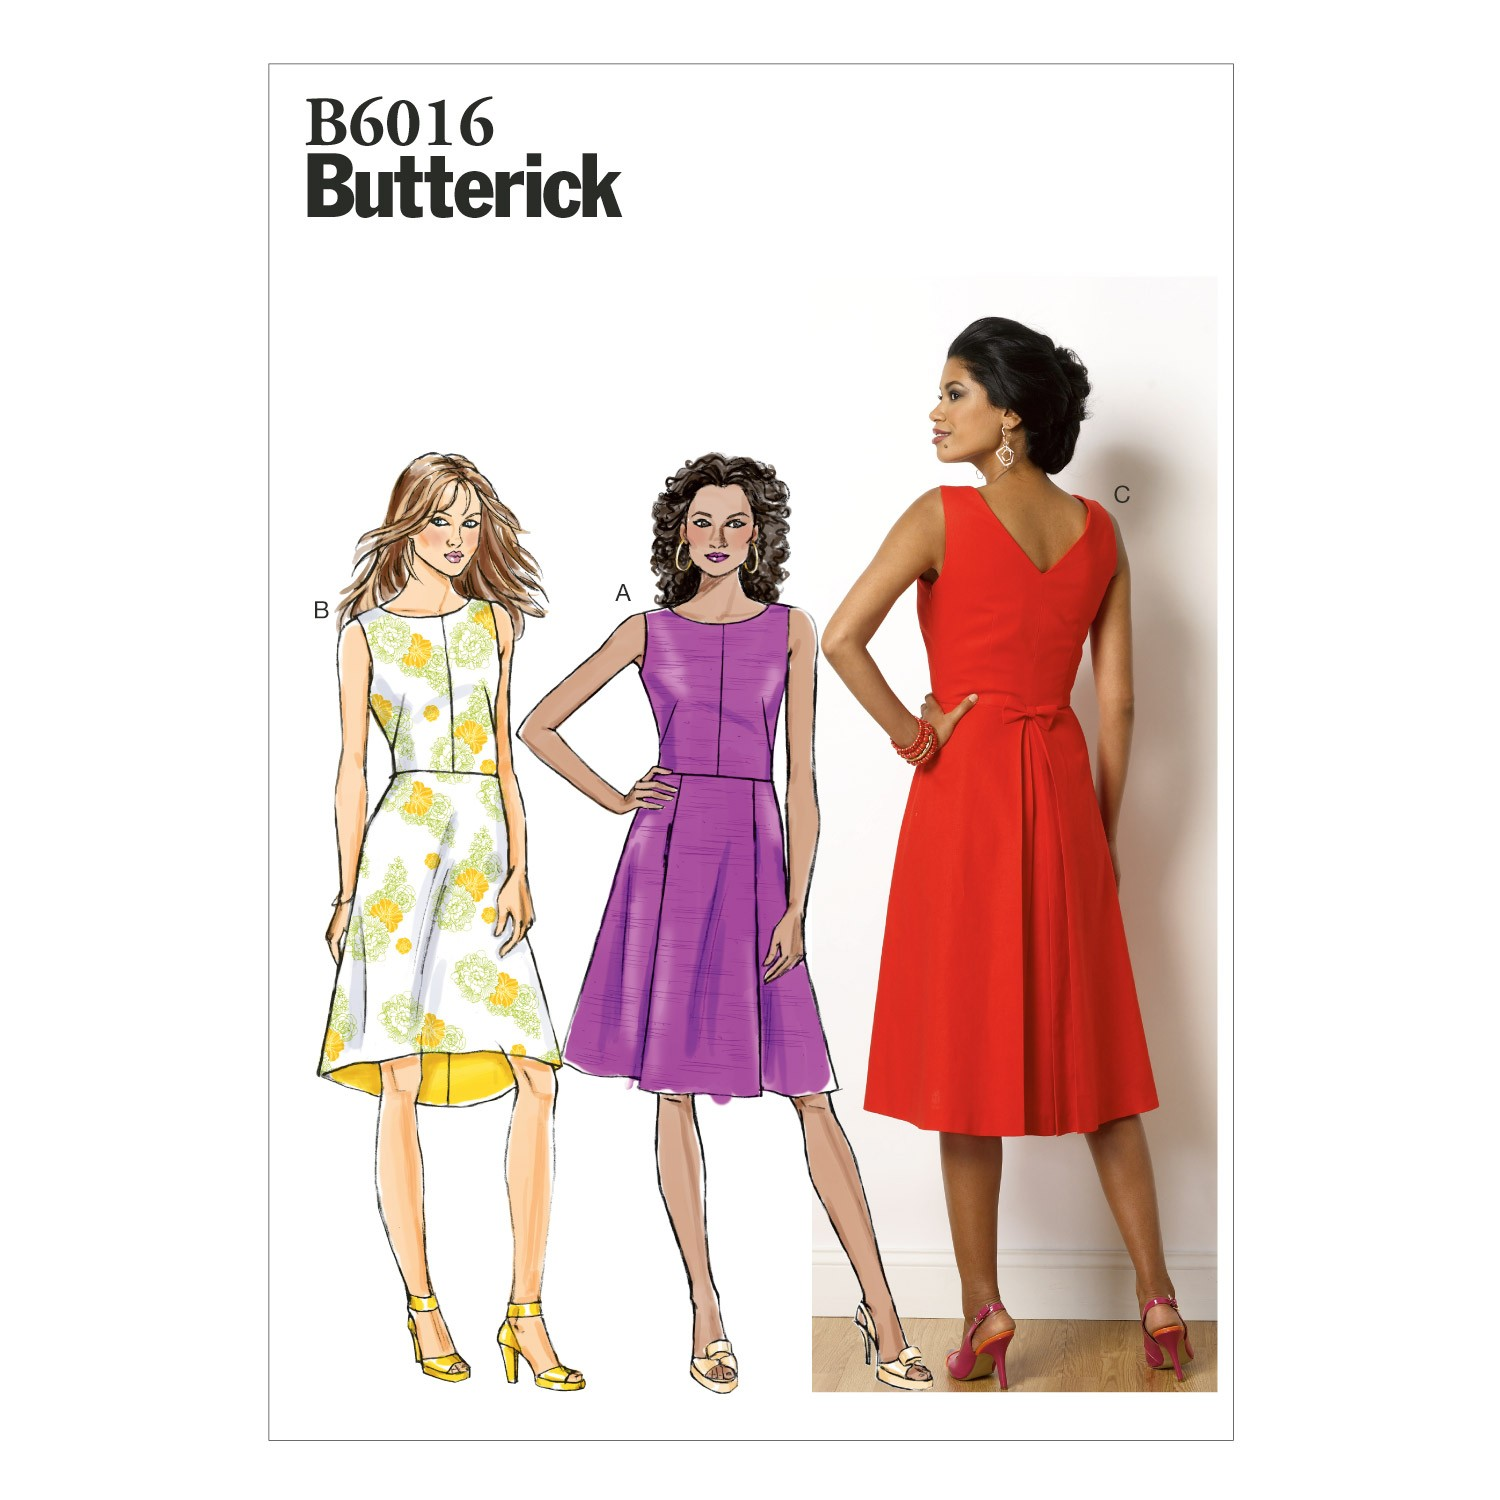 Butterick Sewing Pattern 6016 Misses' Lined Bodice Dress